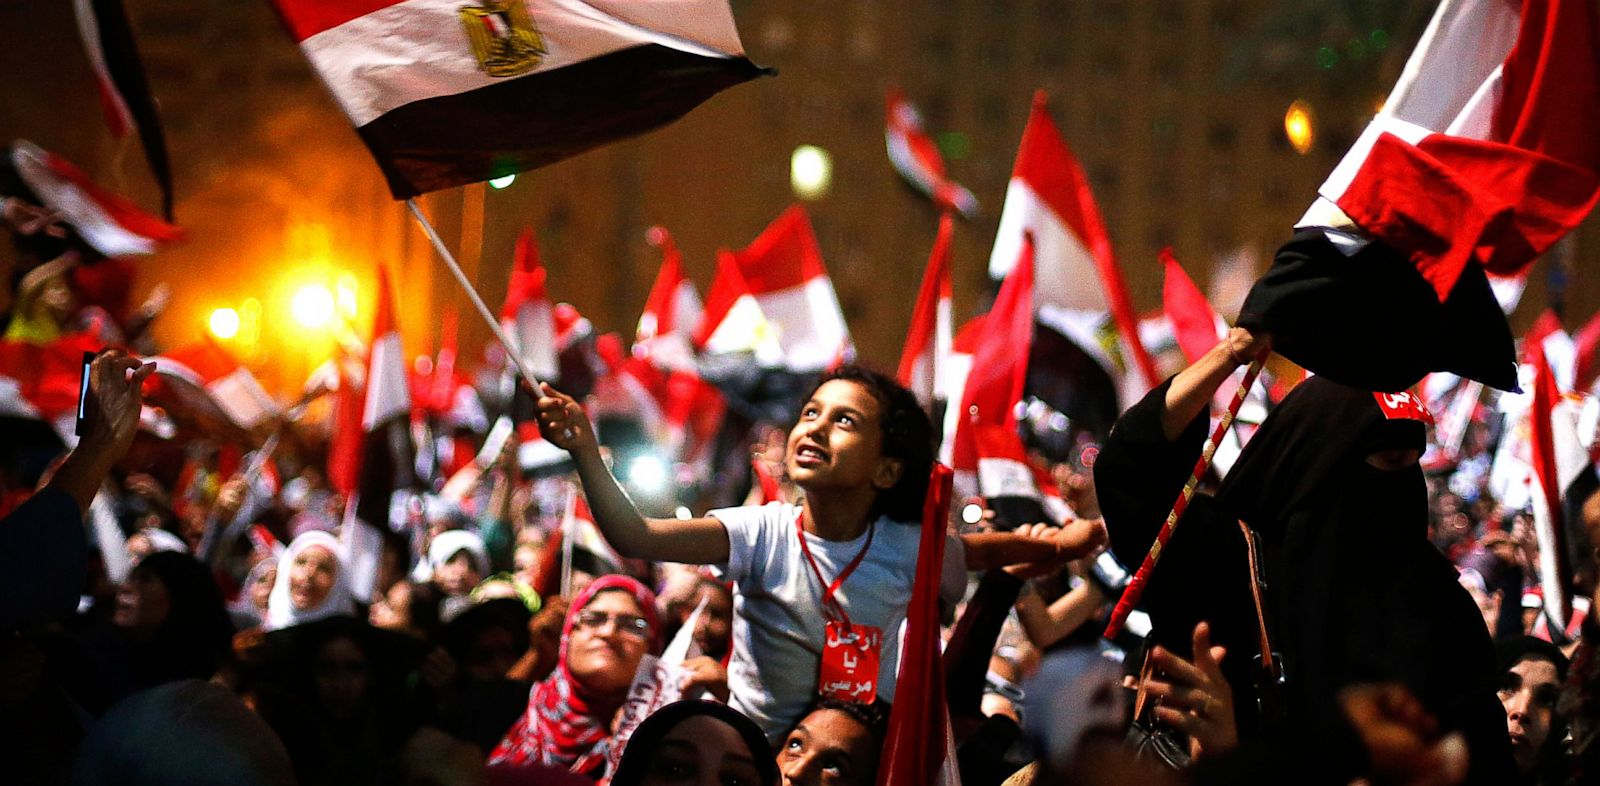 PHOTO: Protests in Egypt